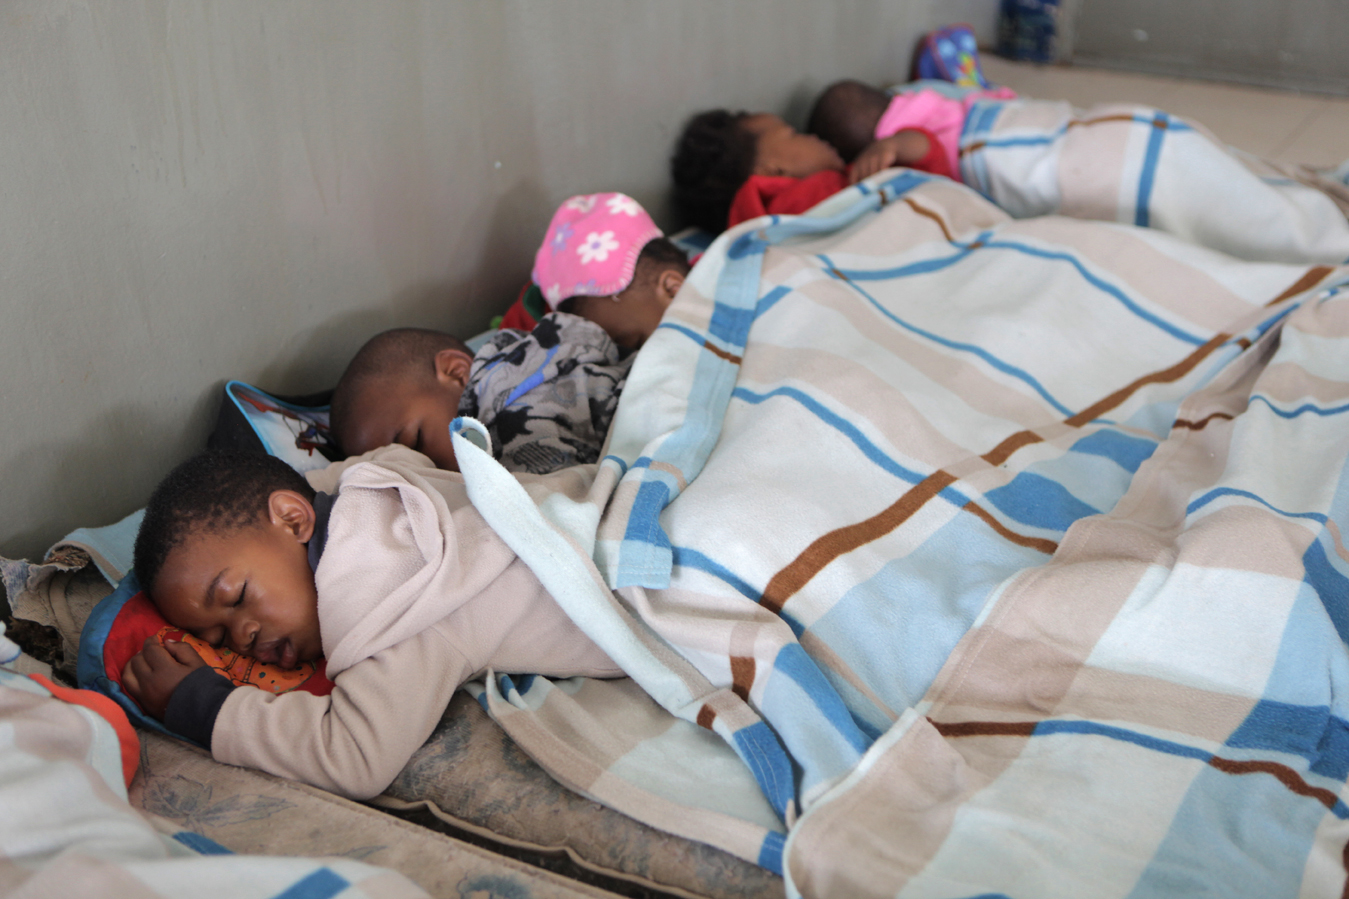 The youngest class take an afternoon nap at the Khulakahle David Beare ECD Centre on the outskirts of Durban in the eThekwini district. Principal Nokthula Zulu first opened as a crèche in 1987, responding to the need for children to be cared for while their parents were at work, and registered as a formal ECD centre in 1998. Over 92% of preschool children in KwaZulu-Natal attend unregistered ECD centres (crèches). Save the Children, operating in KZN for over 50 years, recognised the need to support crèches in the area with better management skills and access to learning materials, as well as running the crèche forums and supporting crèches with registration to become ECD centres.